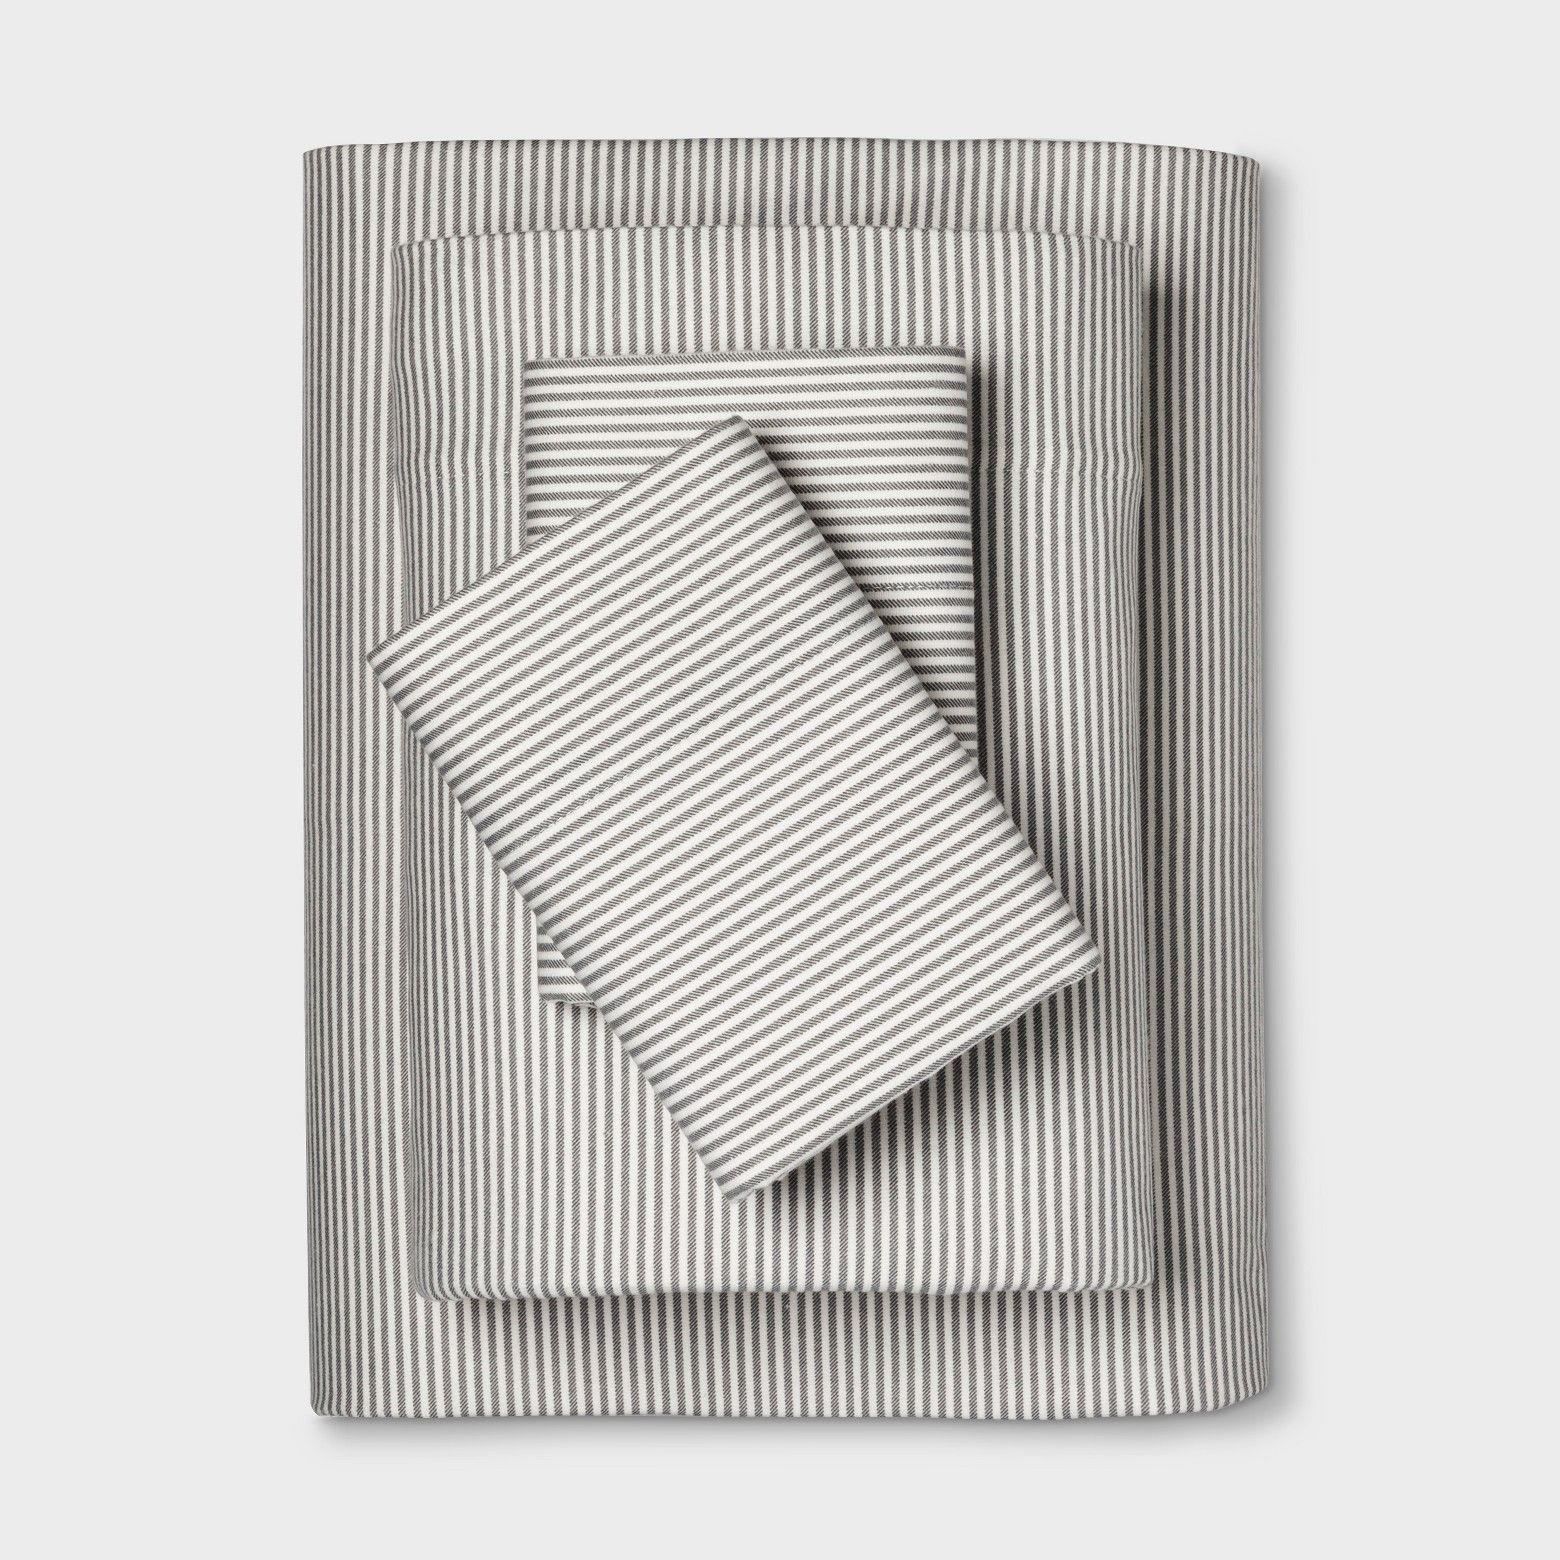 Perfect for cool weather, Threshold's Flannel Sheets bring